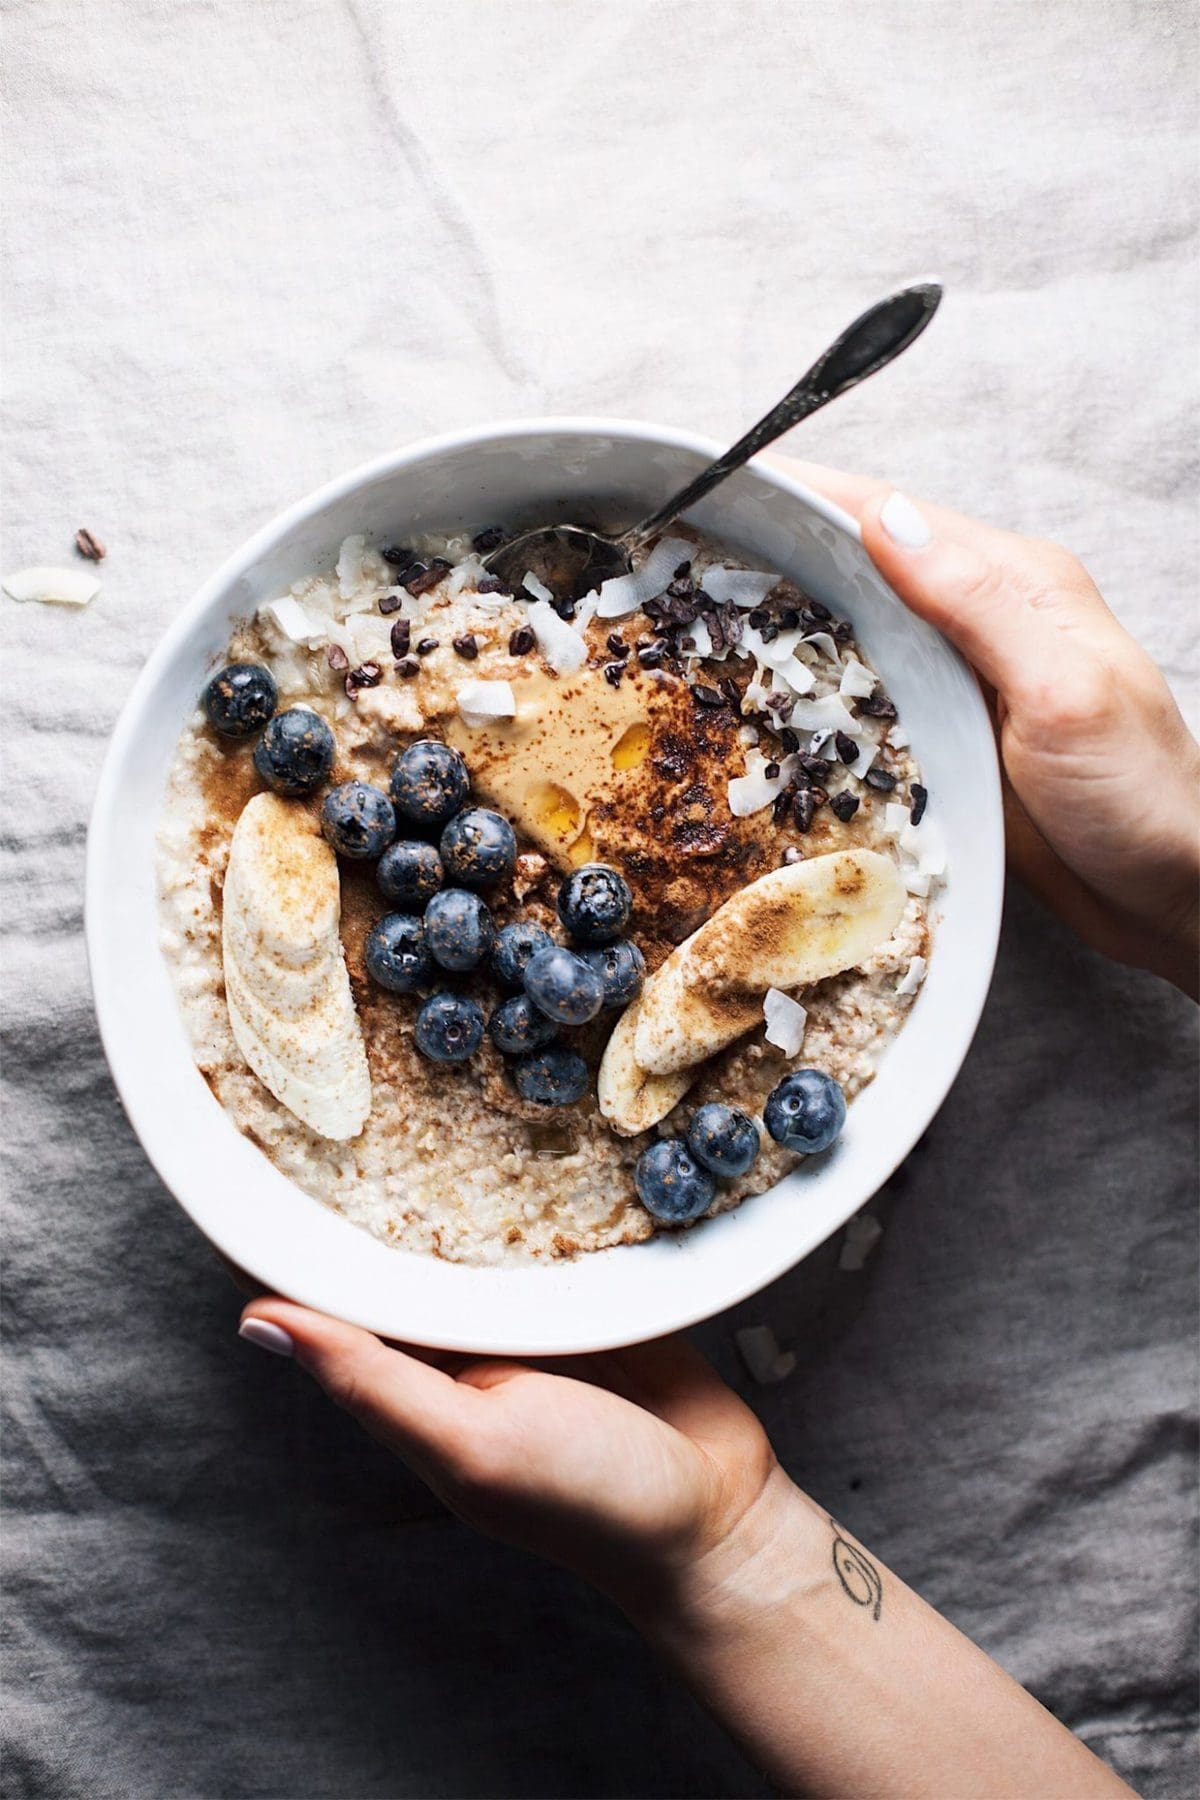 hands holding a white bowl of peanut butter oatmeal topped with blueberries, bananas, peanut butter